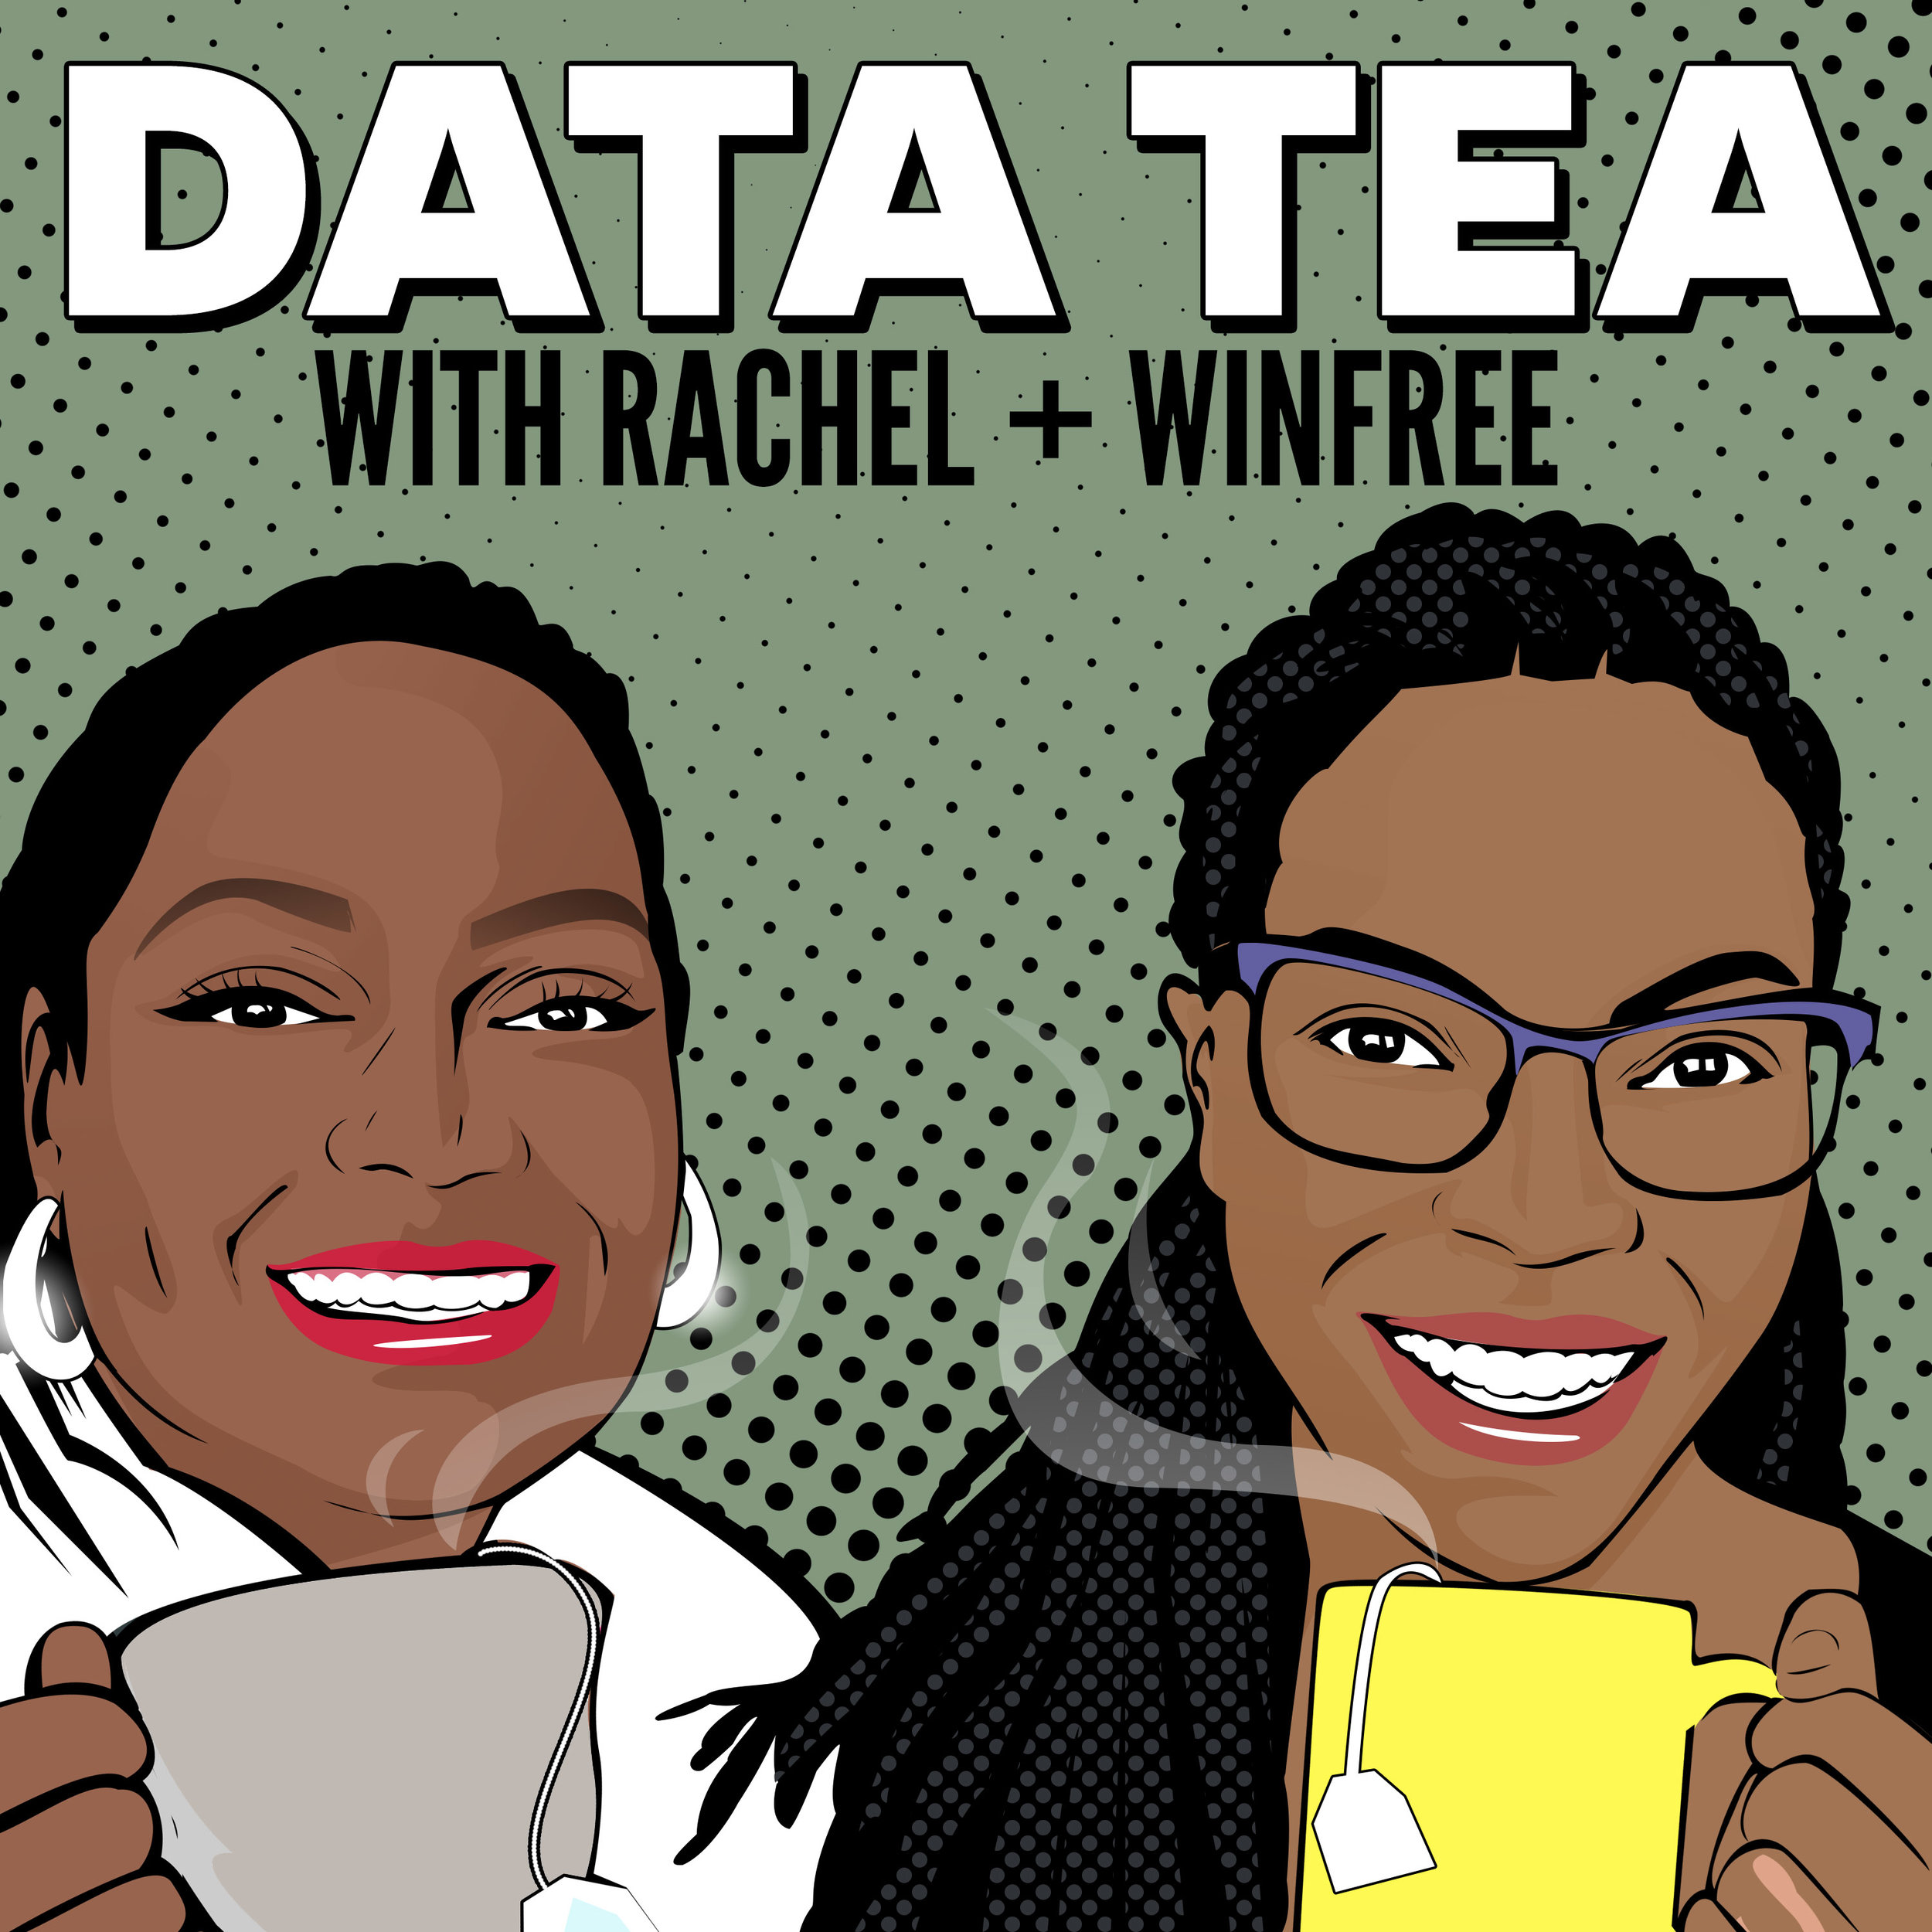 Join the Data Nation! - Our new podcast Data Tea is live! Data Tea is a weekly podcast where we are giving you real data and all the juicy details about it, as well as how it affects your money, status, health, love, and life! Join us each Friday for a new episode!